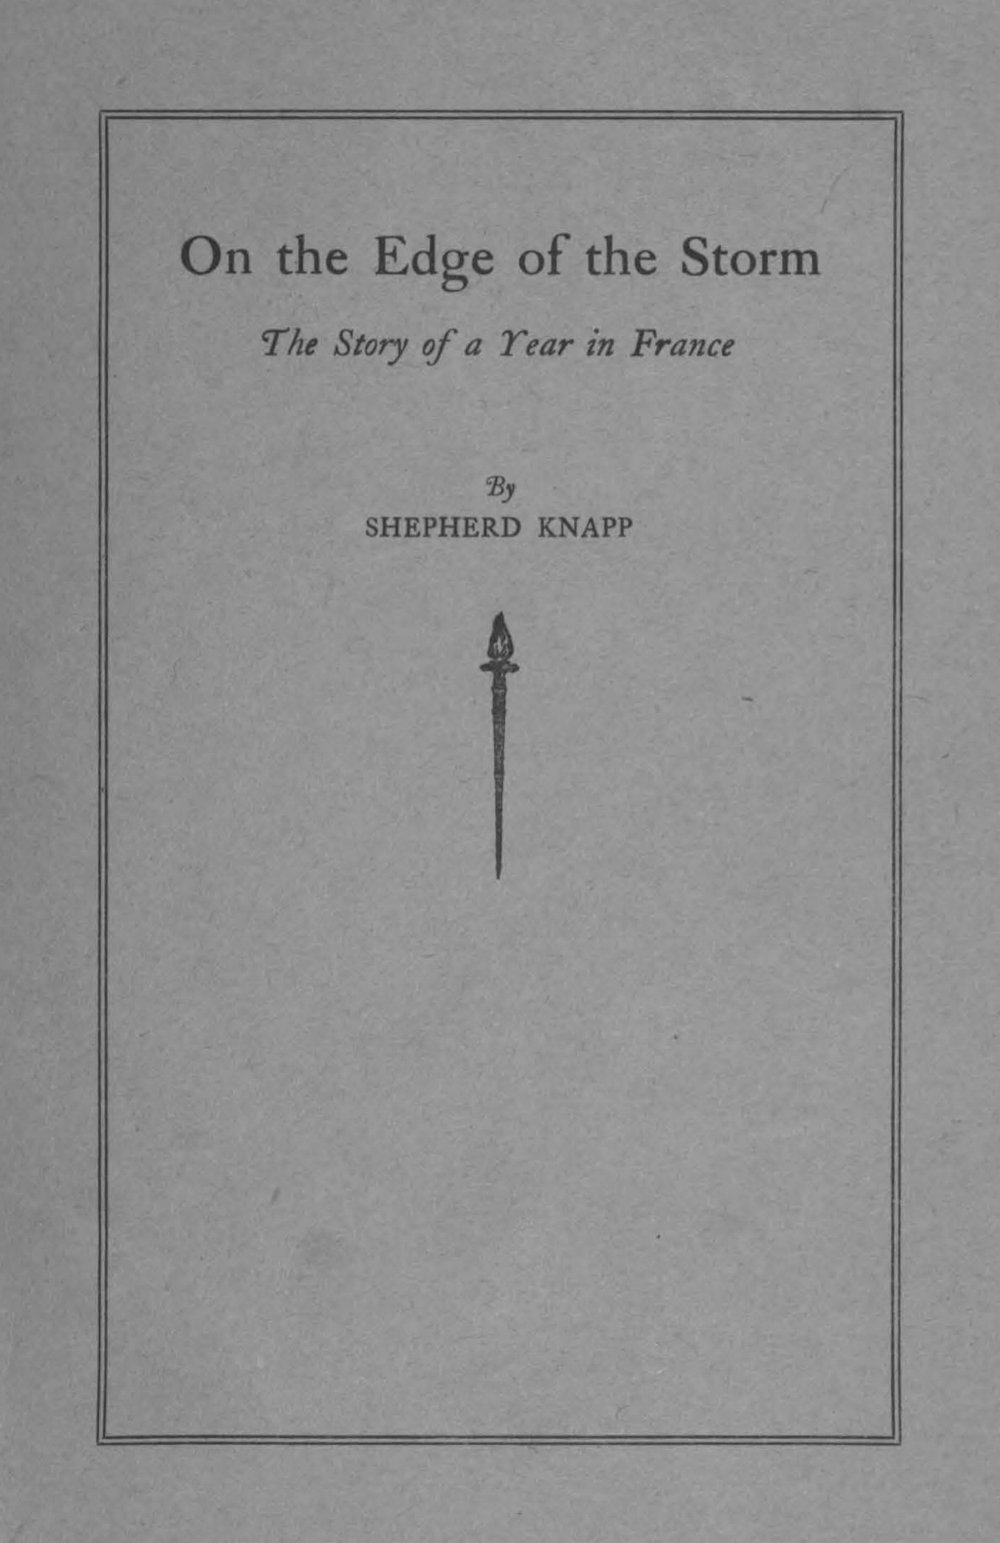 Knapp, Jr., Shepherd, On the Edge of the Storm Title Page.jpg